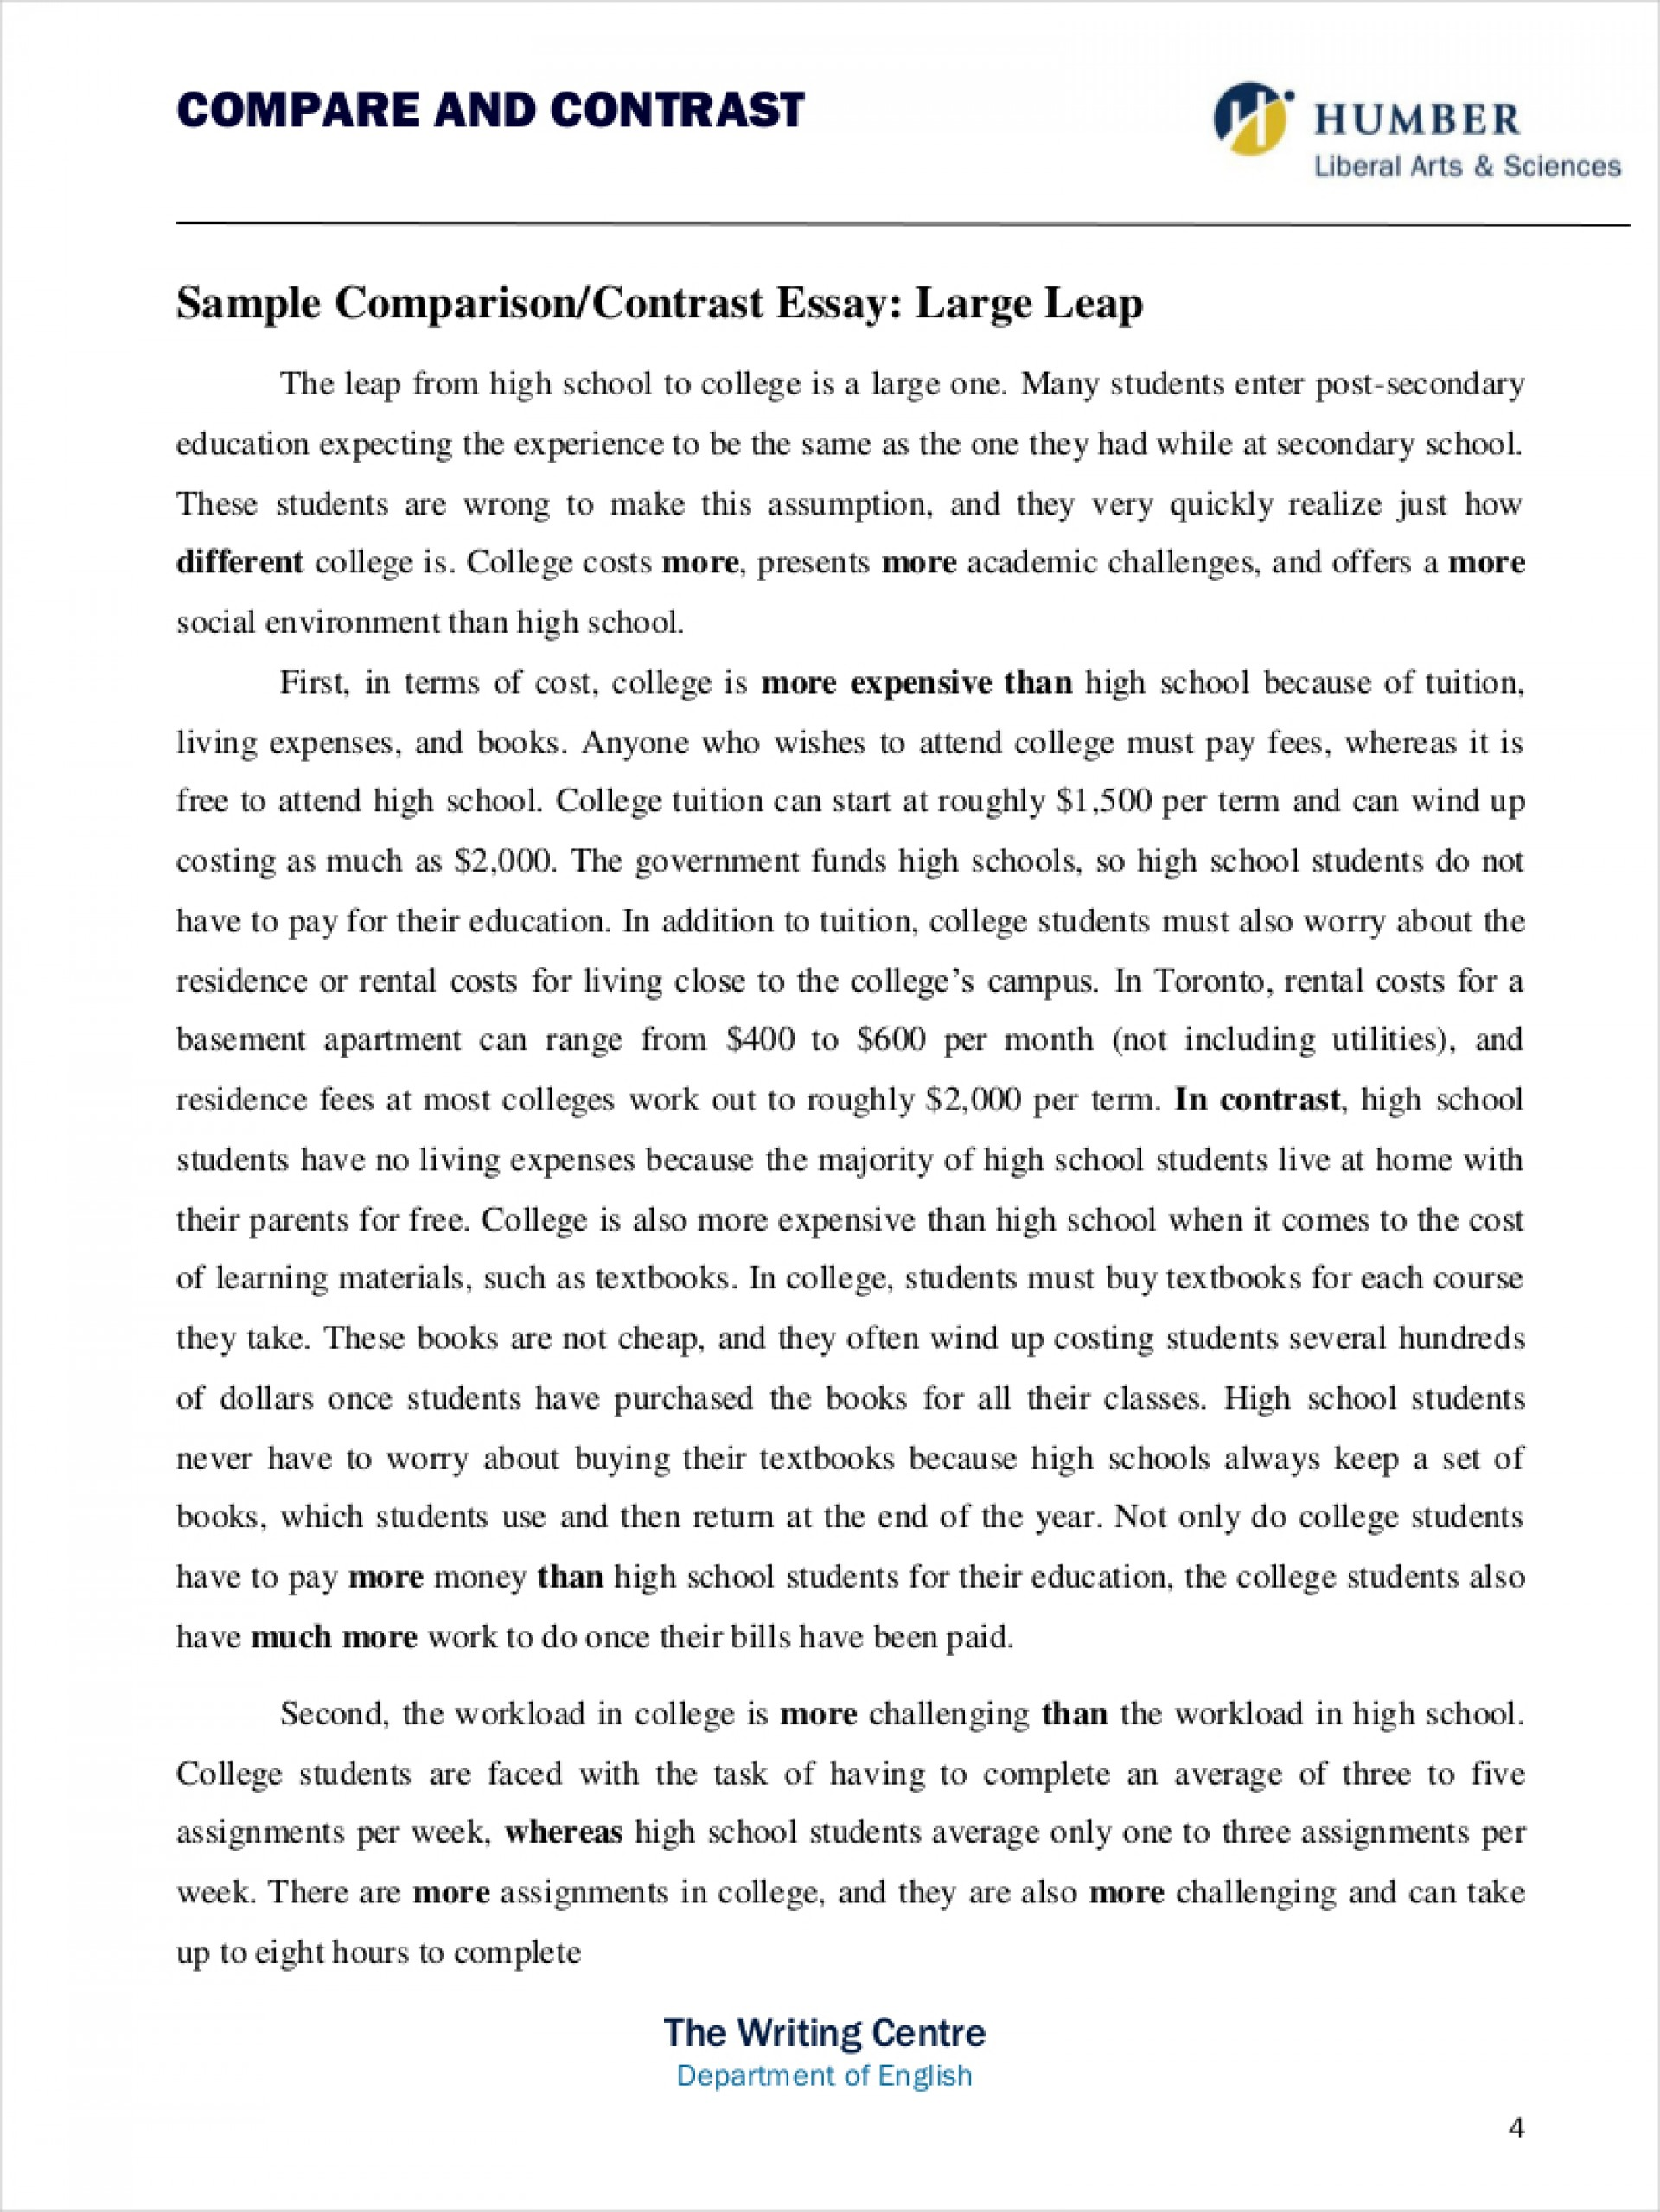 014 How To Write Compare And Contrast Essay Example Comparative Samples Free Pdf Format Download Throughout Examples Comparison Thesis Coles Thecolossus Co Within Ex Outstanding A Block Introduction Paragraph 1920